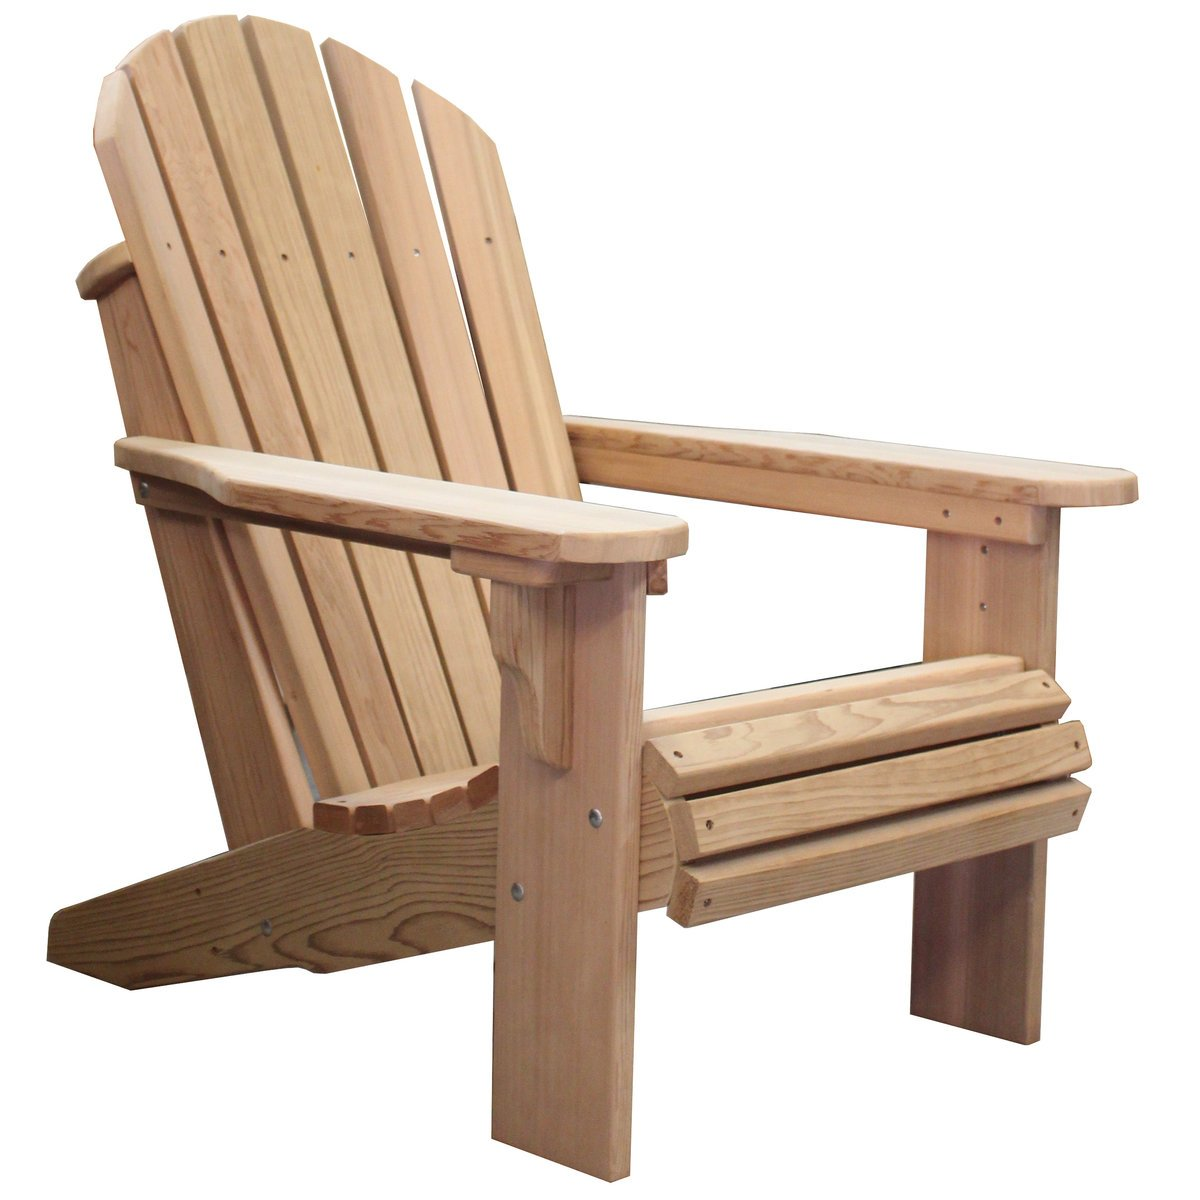 The Best Fitting For Your House Adirondack Chairs Home Furniture Design